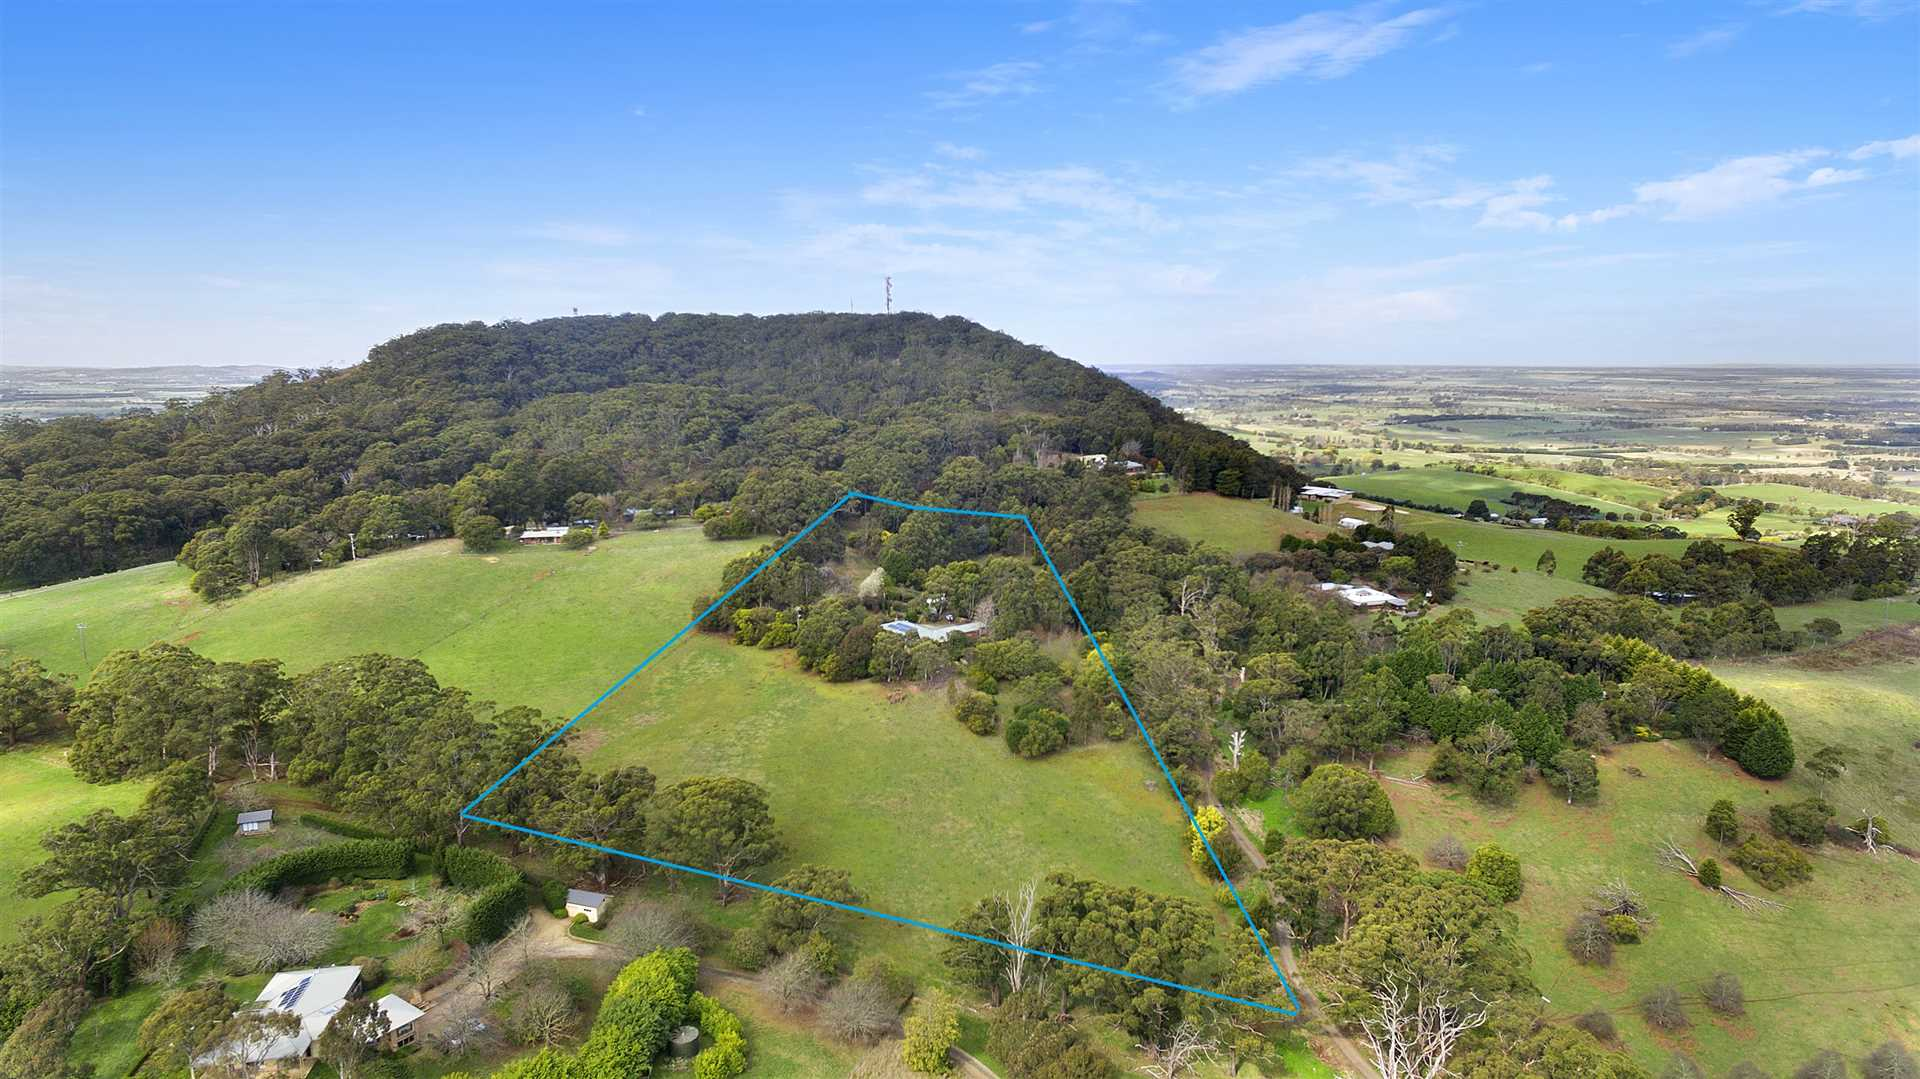 On Top Of The Mountain - Approximately 9 Acres